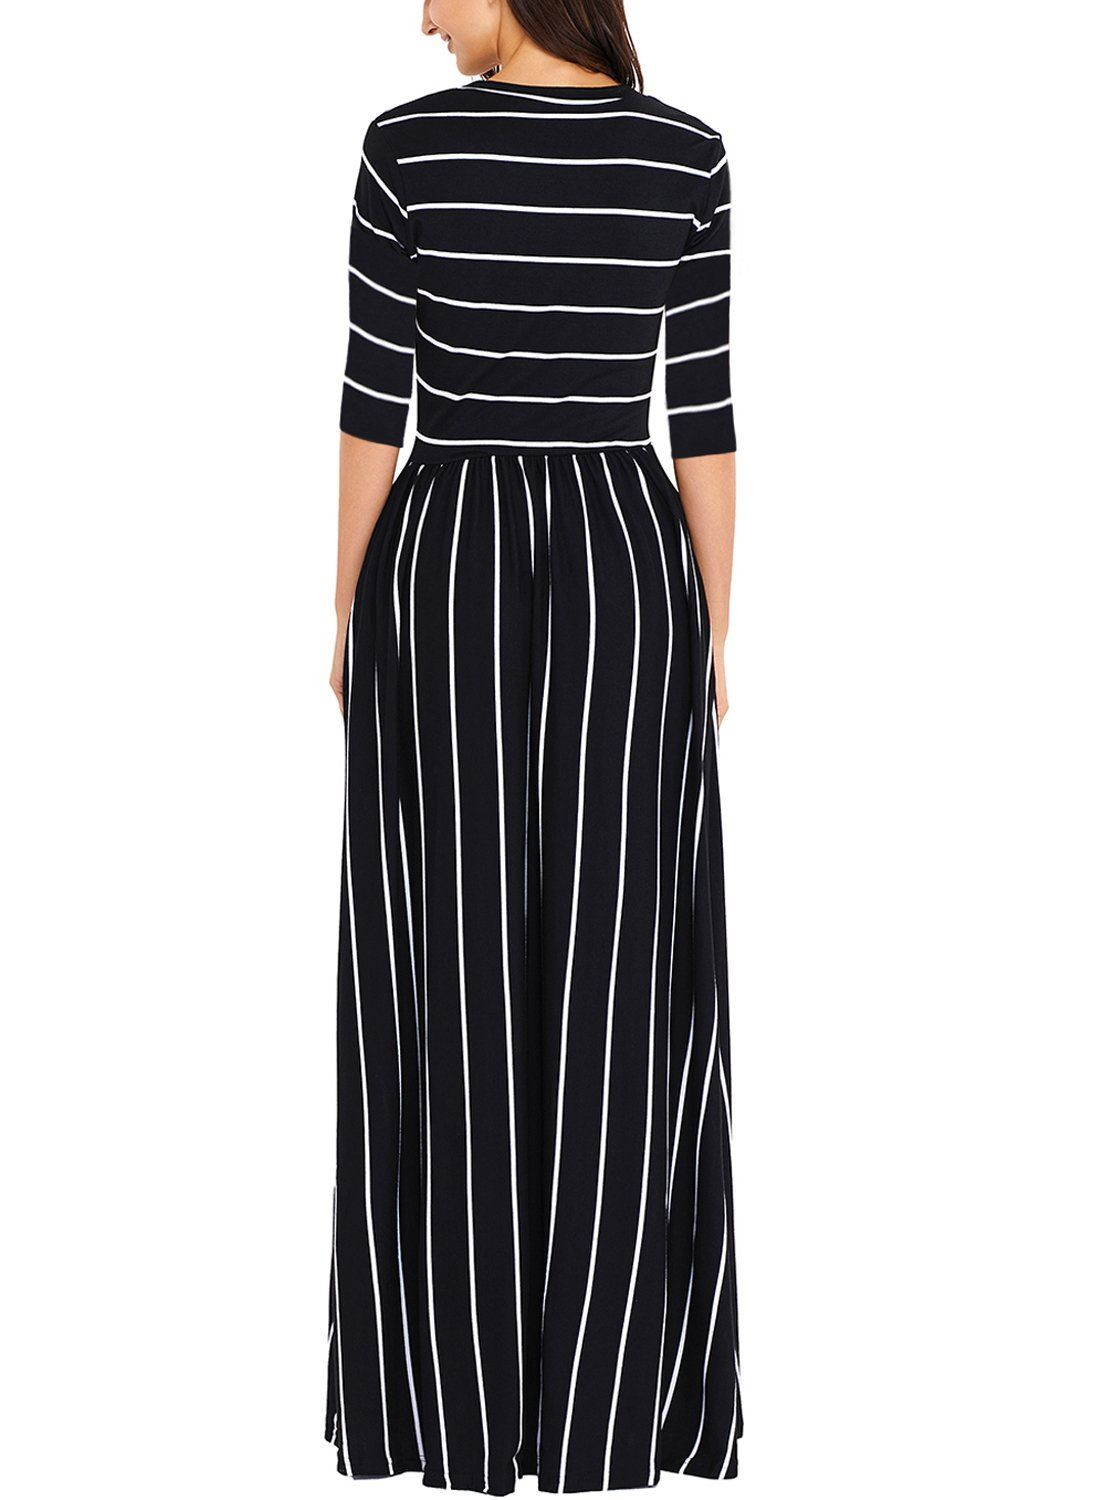 8ba123ca6ef02 Maternity Fashion - smart maternity dresses : HOTAPEI Womens Summer Casual  Loose Striped Long Tshirt Dress 3/4 Sleeve Pocket Maxi Dresses Black and  White ...